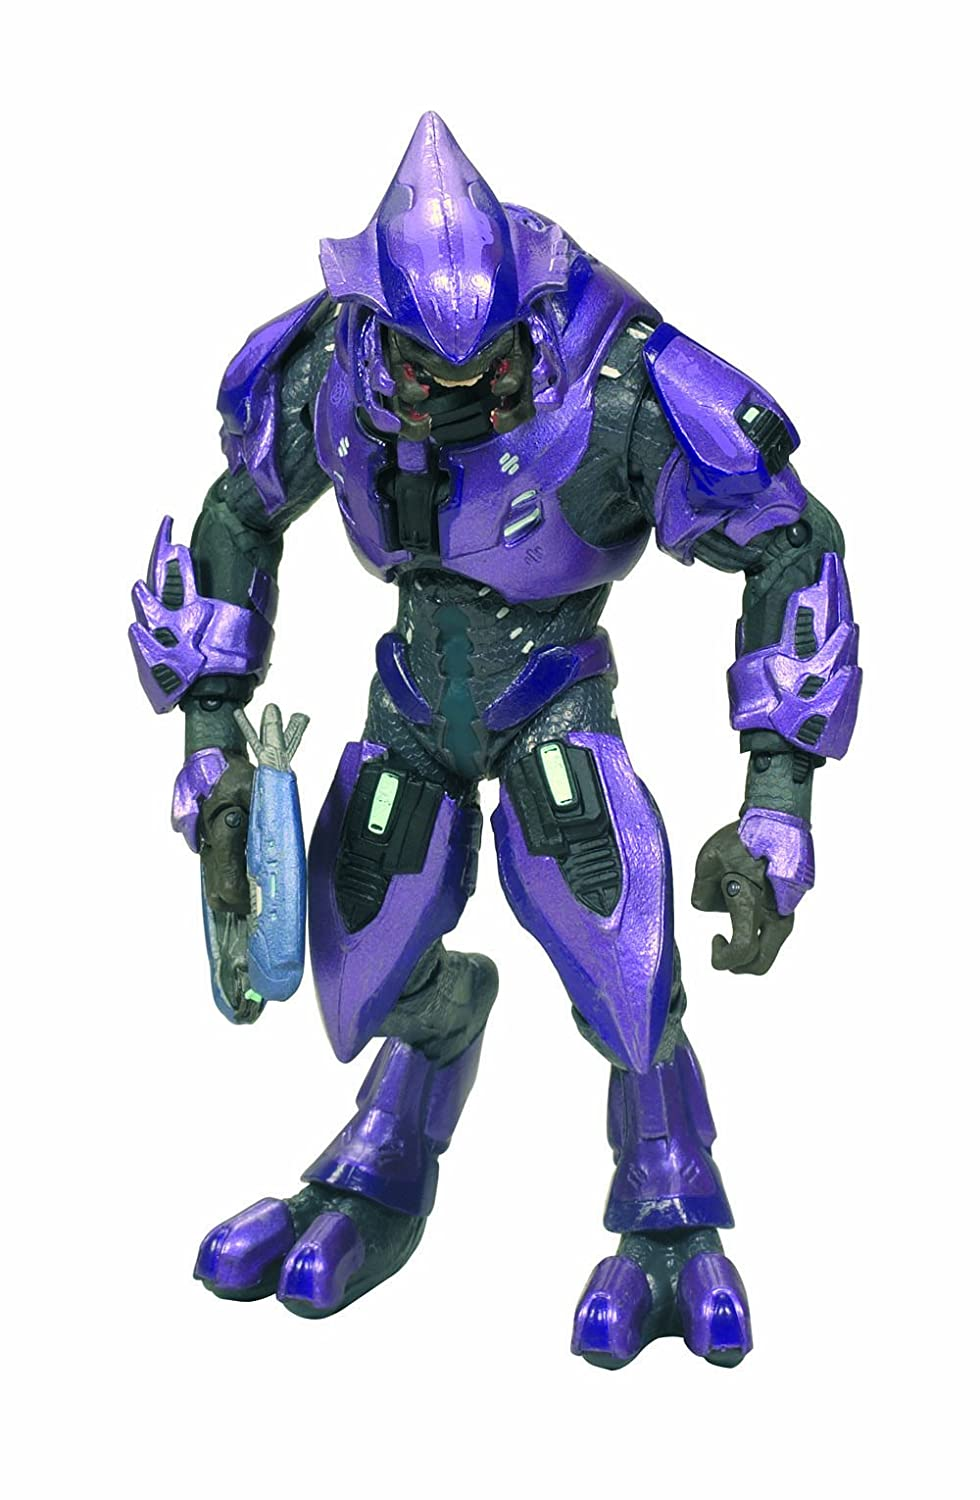 amazon com mcfarlane toys halo reach series 2 spartan vs elite